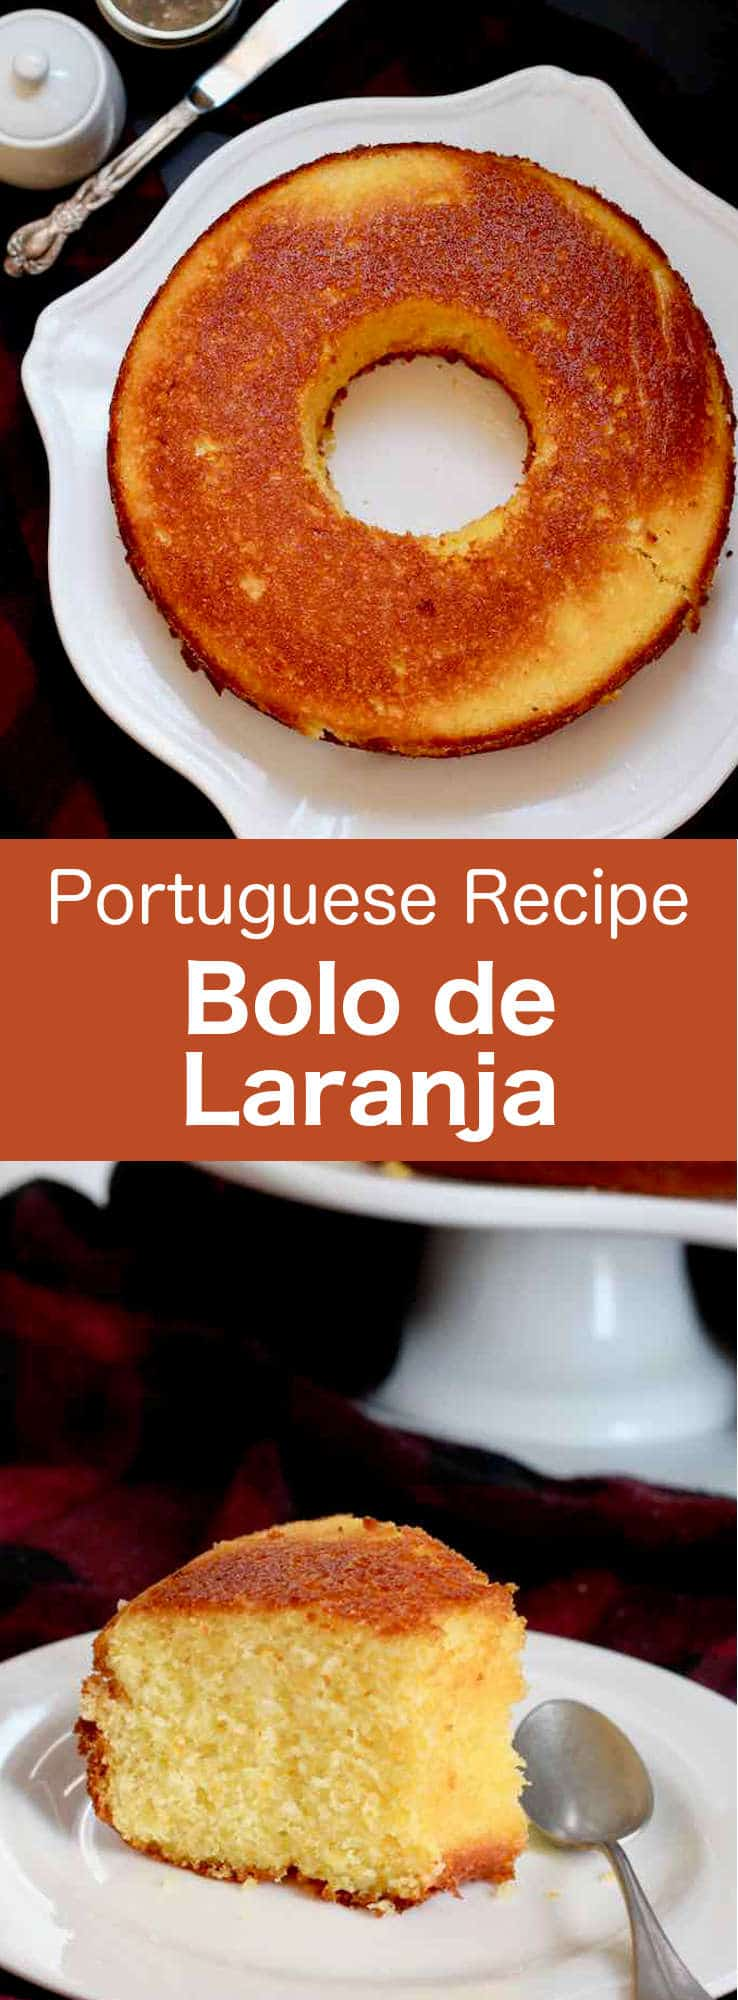 Bolo de laranja is a traditional Portuguese pound cake prepared with orange zest. The cake is soaked with a syrup made from orange juice before being served. #Portugal #PortugueseRecipe #Dessert Cake #WorldCuisine #196flavors